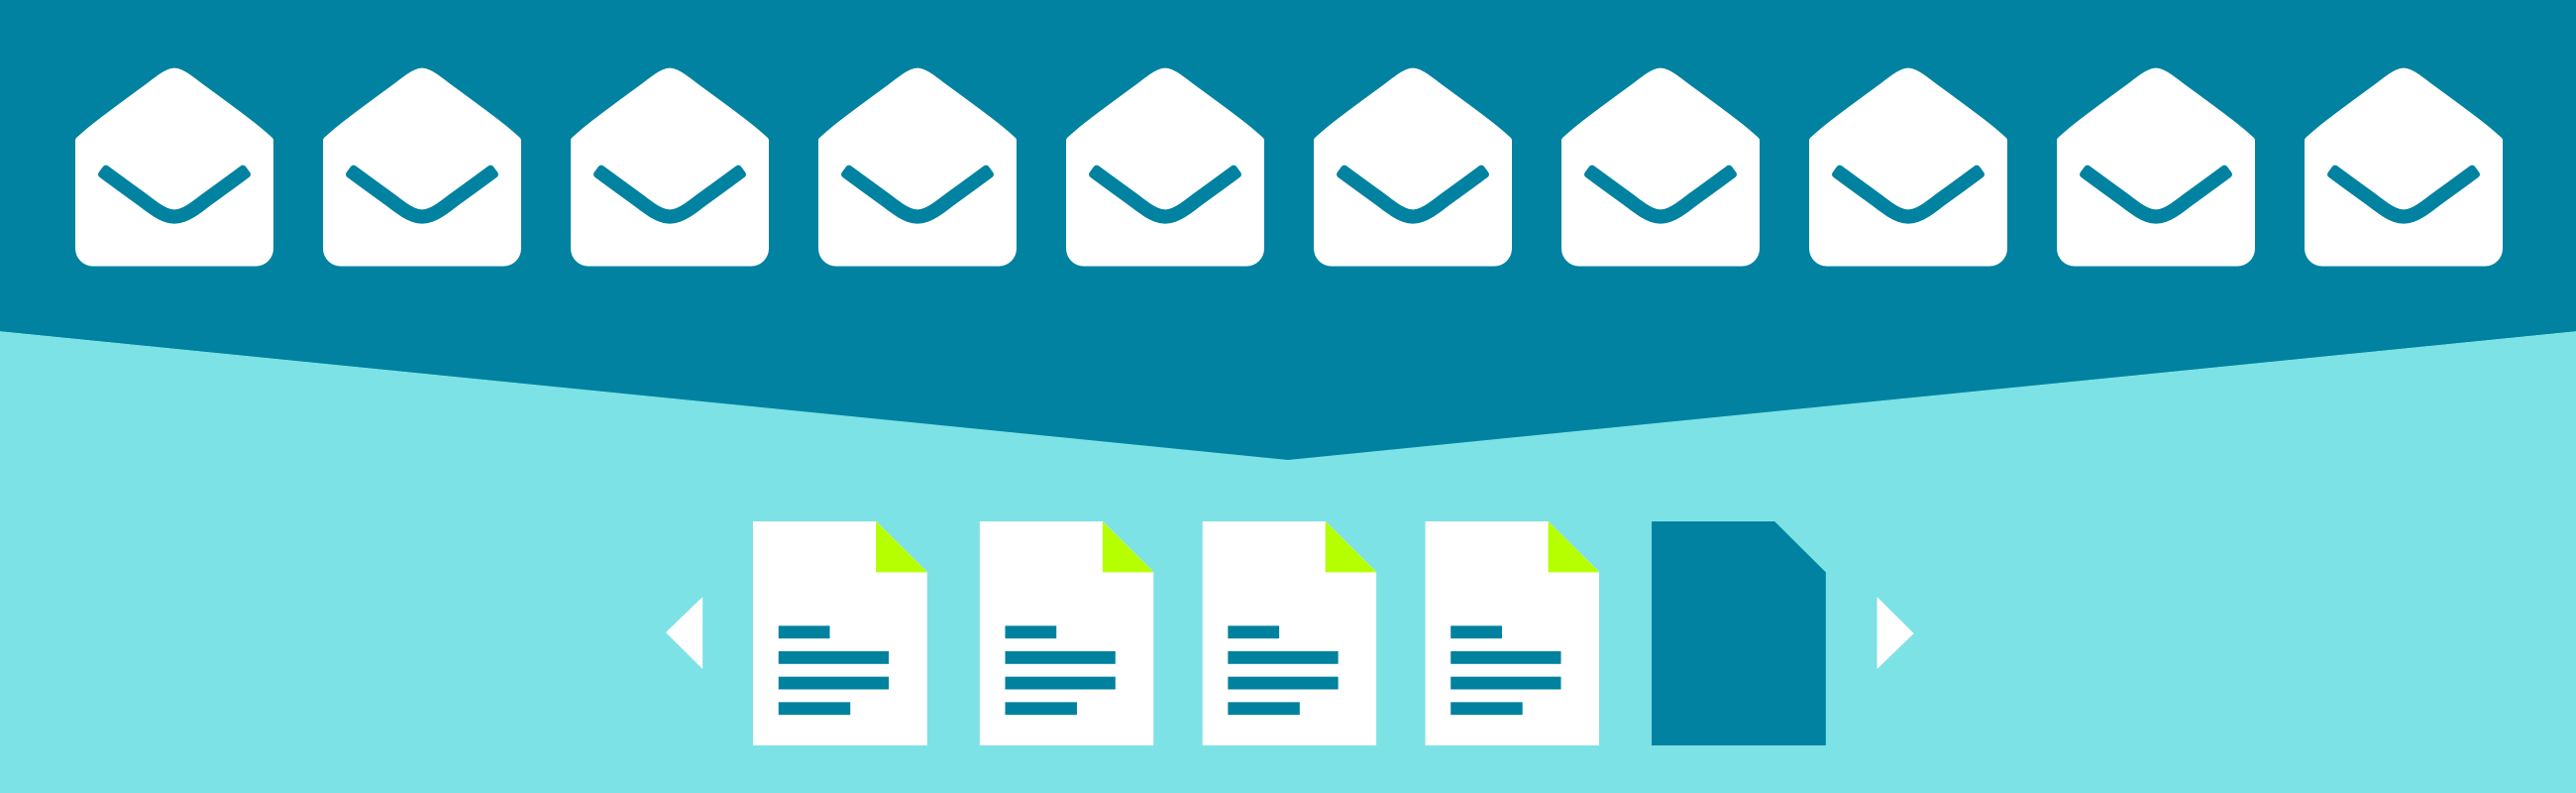 5 Types of Transactional Emails With Recommendations